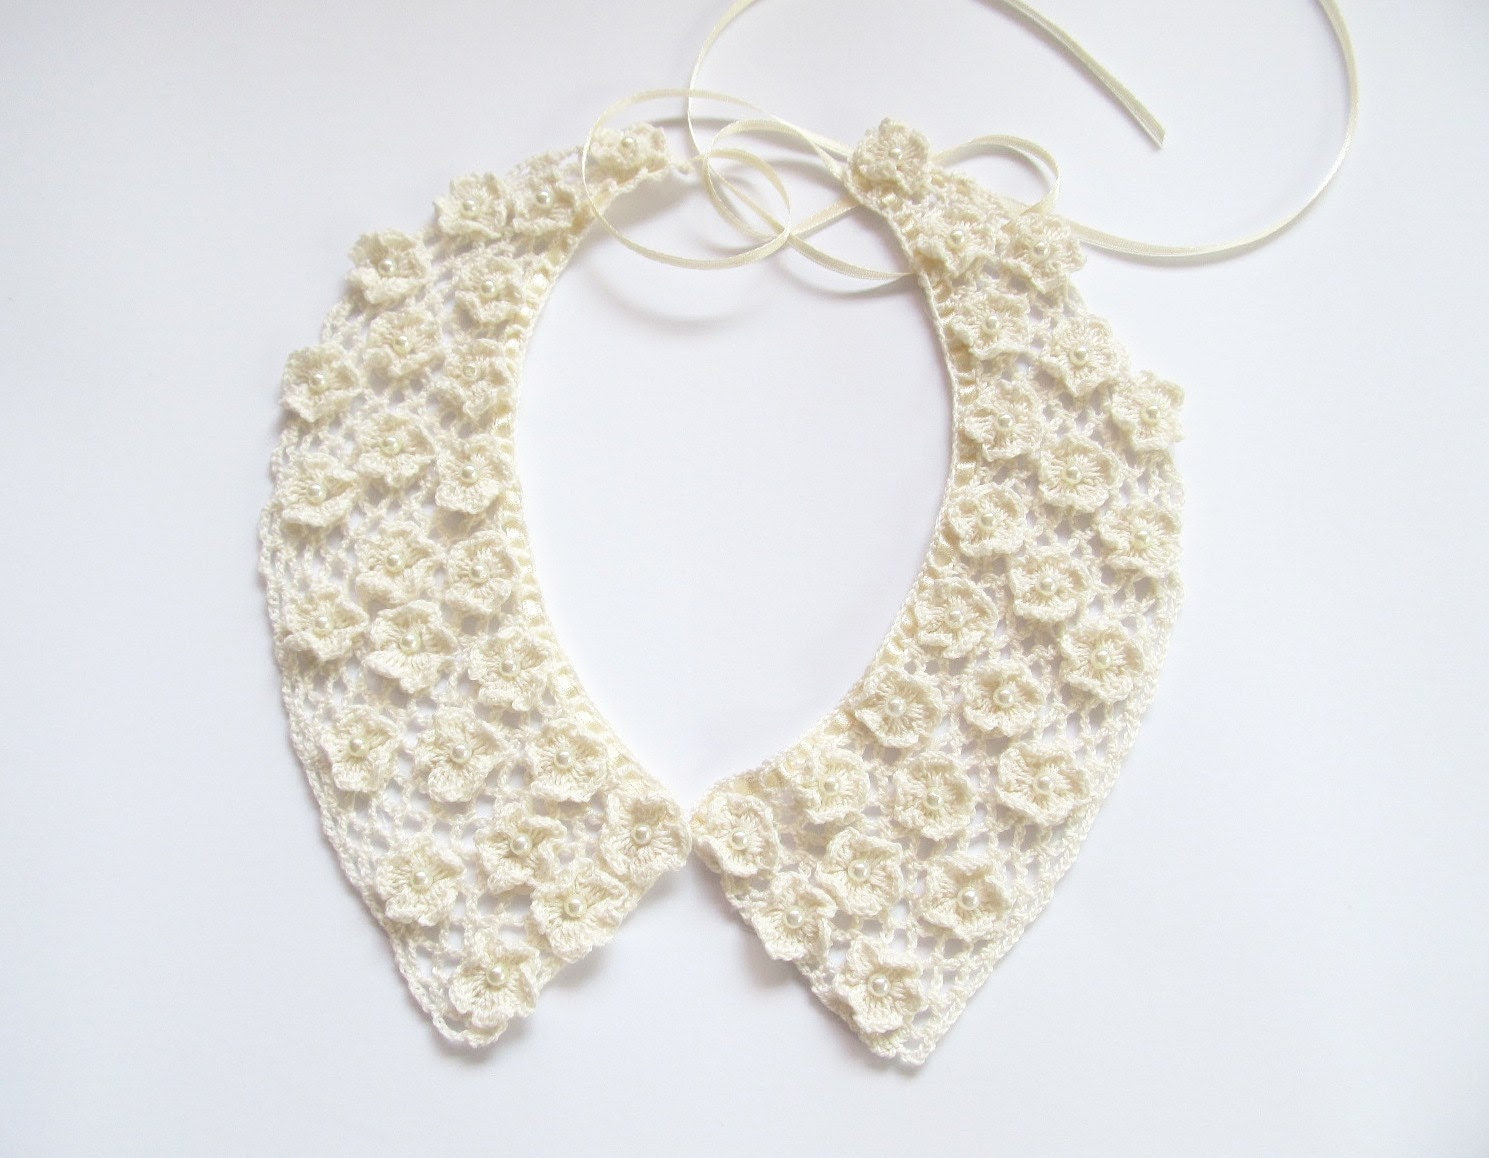 Handmade Crochet Flowers Collar, Lace Ivory Necklace, Bridal Lace Collar, Wedding Accesories, Gift for Her - JurgitasHandicrafts